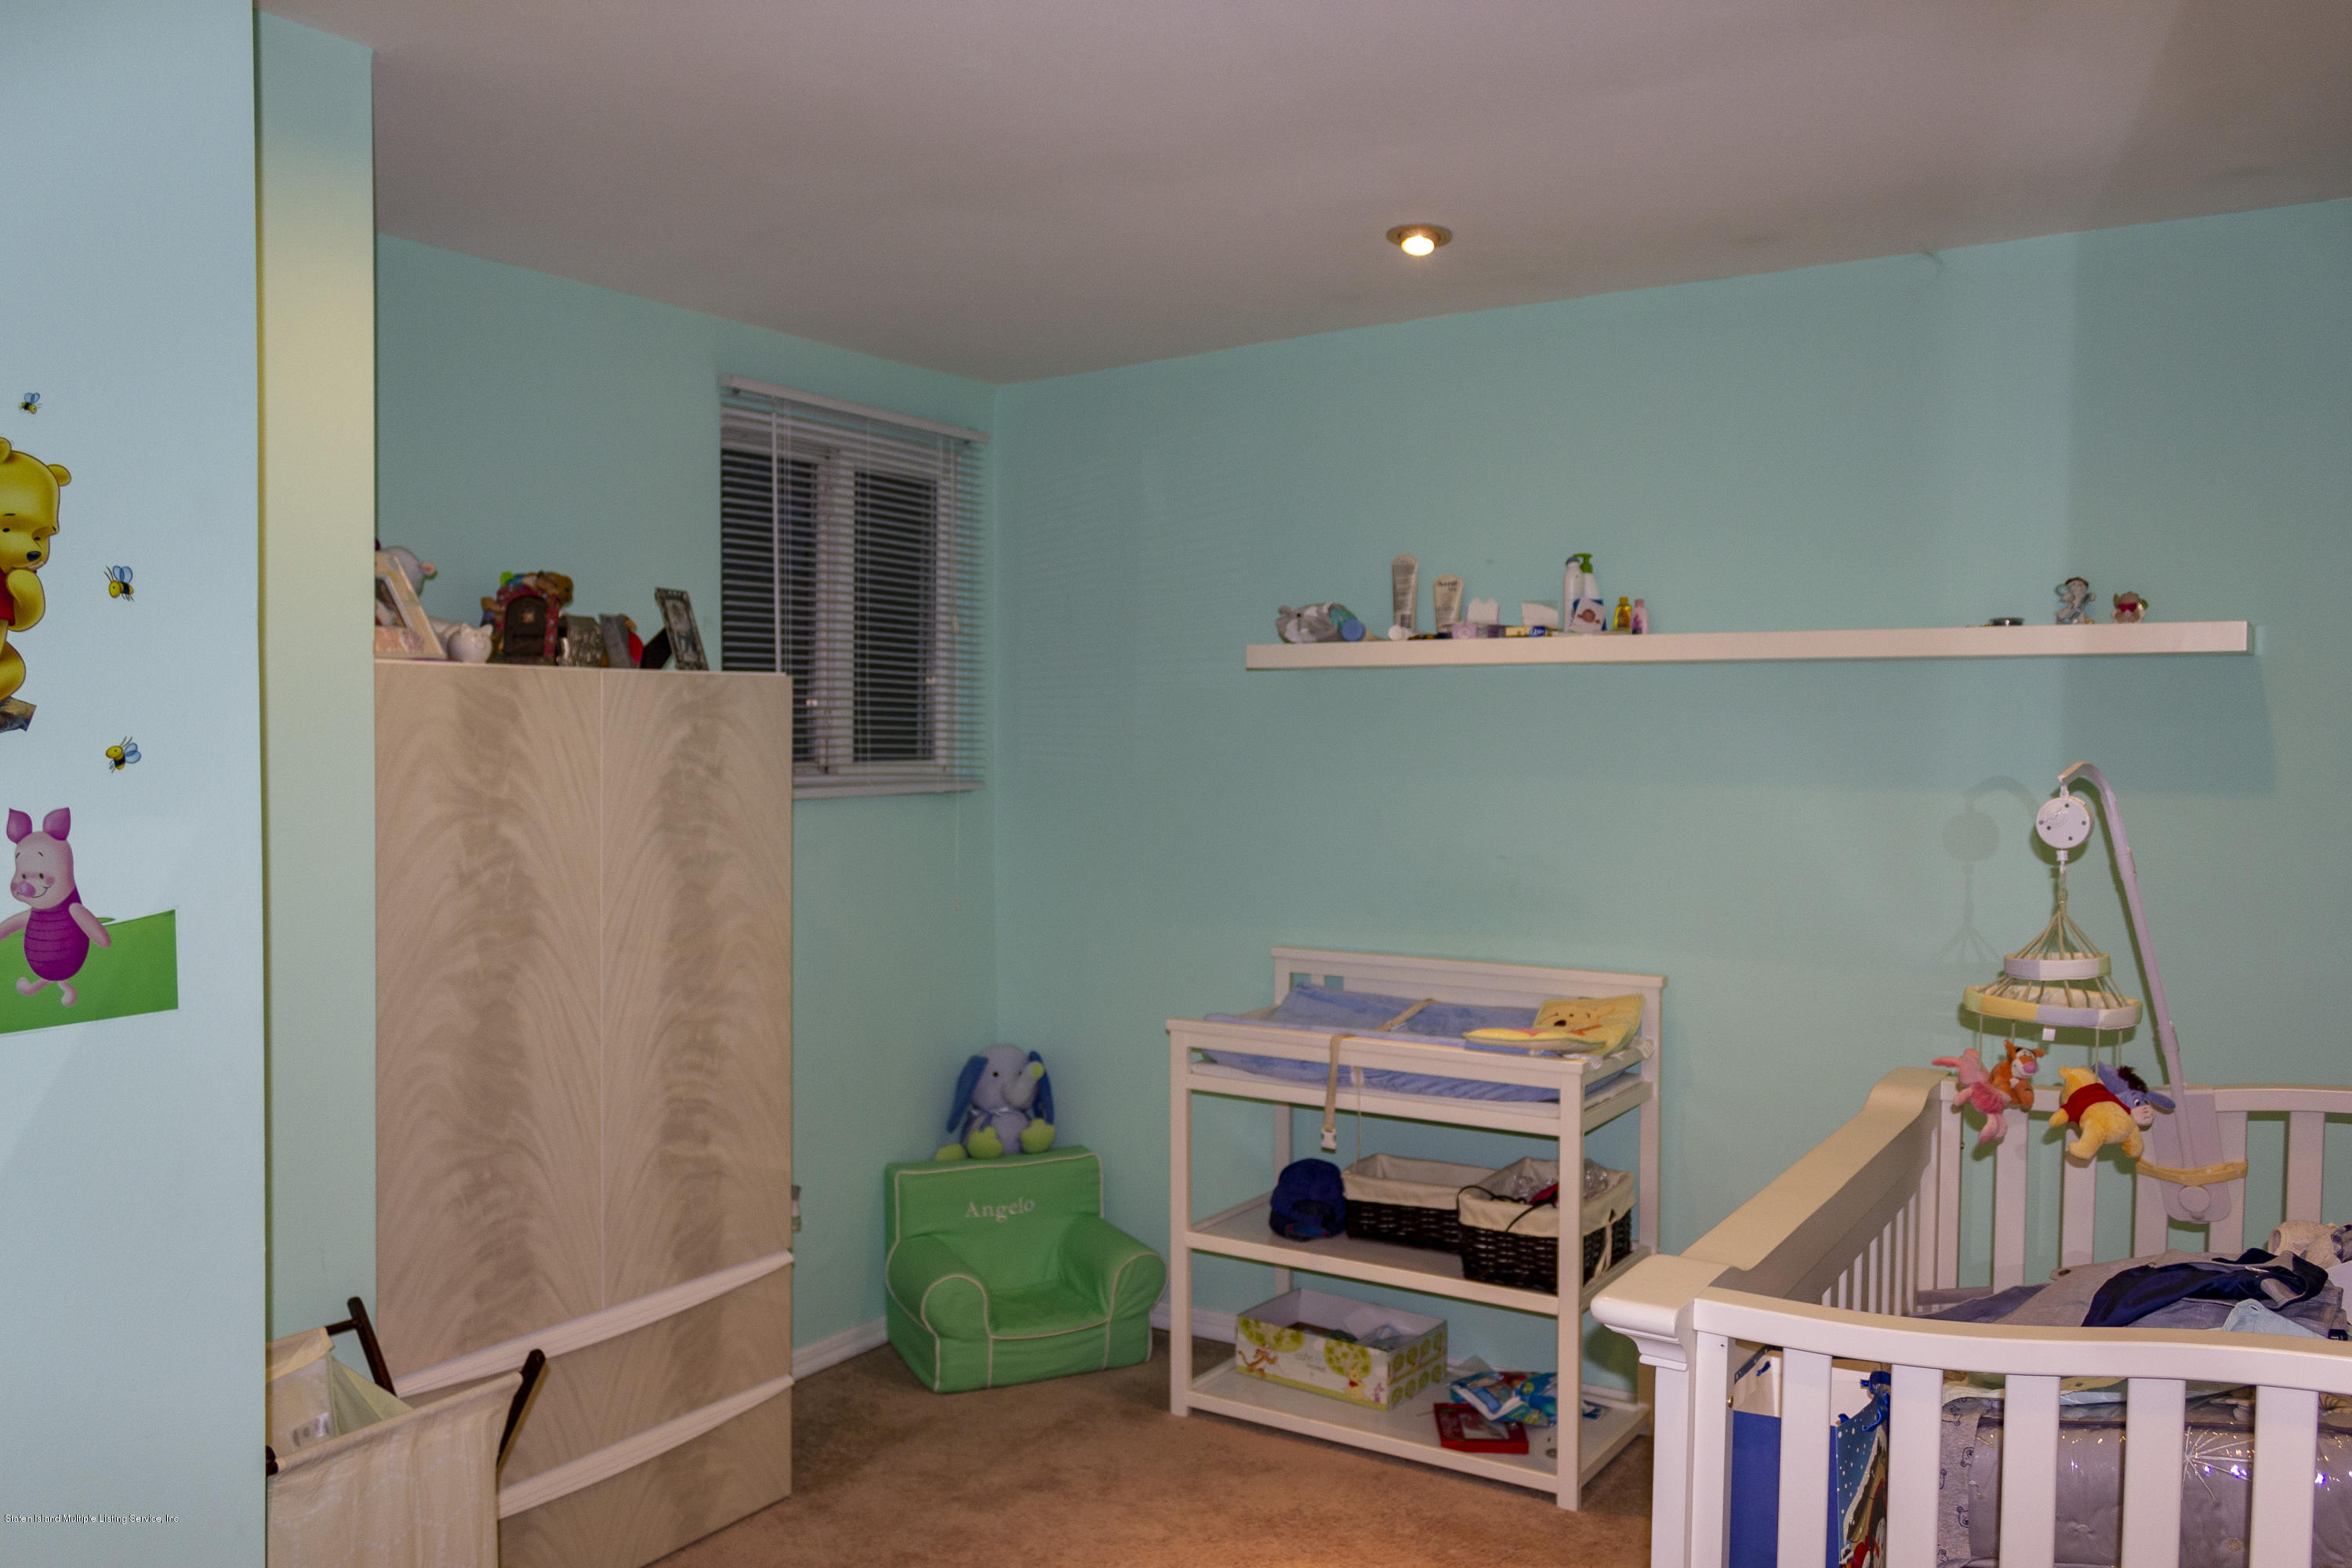 Single Family - Semi-Attached 59 Goller Place  Staten Island, NY 10314, MLS-1127931-16